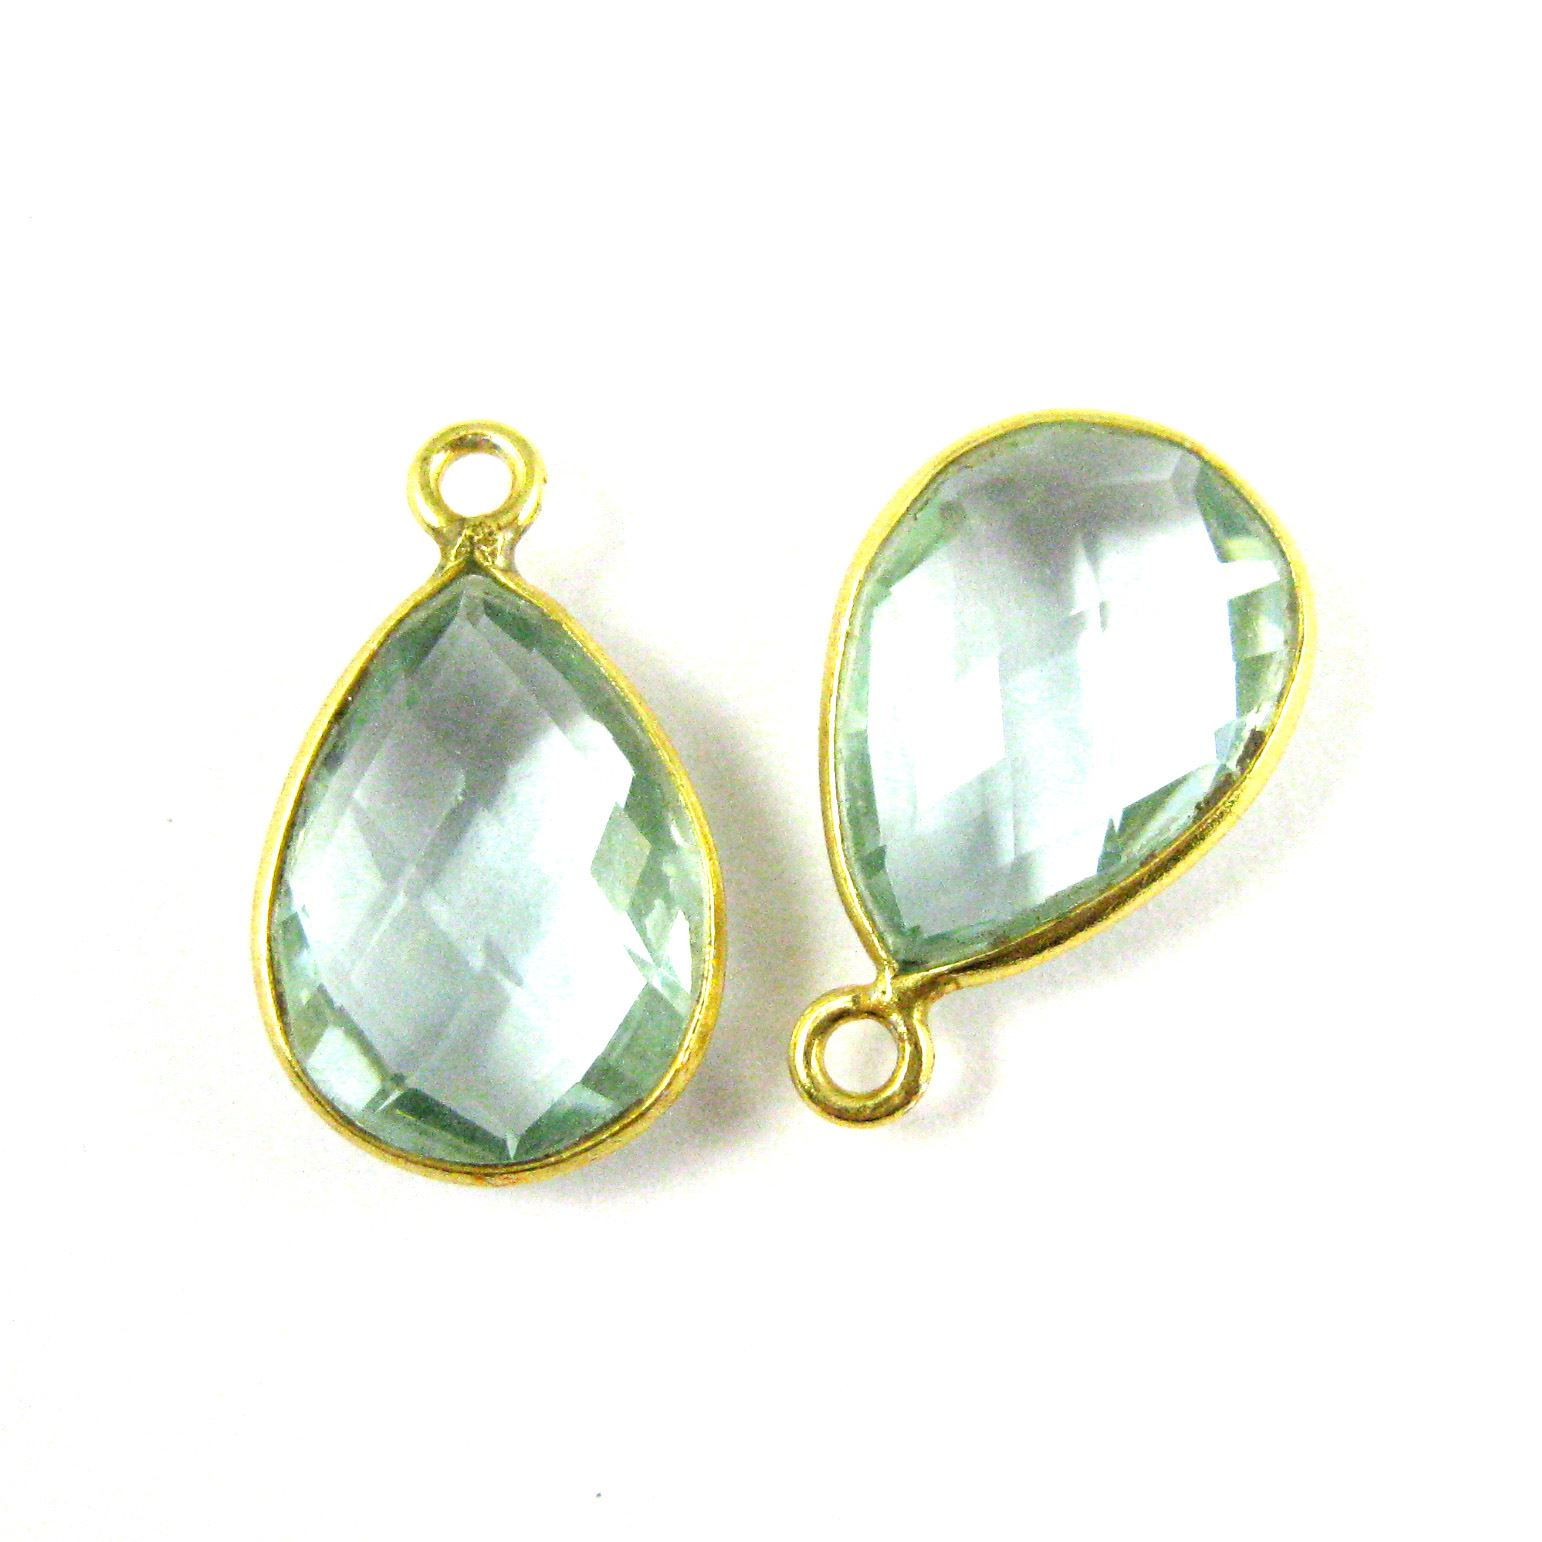 Bezel Gemstone Pendant - 10x14mm Faceted Small Teardop Shape - Aqua Quartz (Sold per 2 pieces)